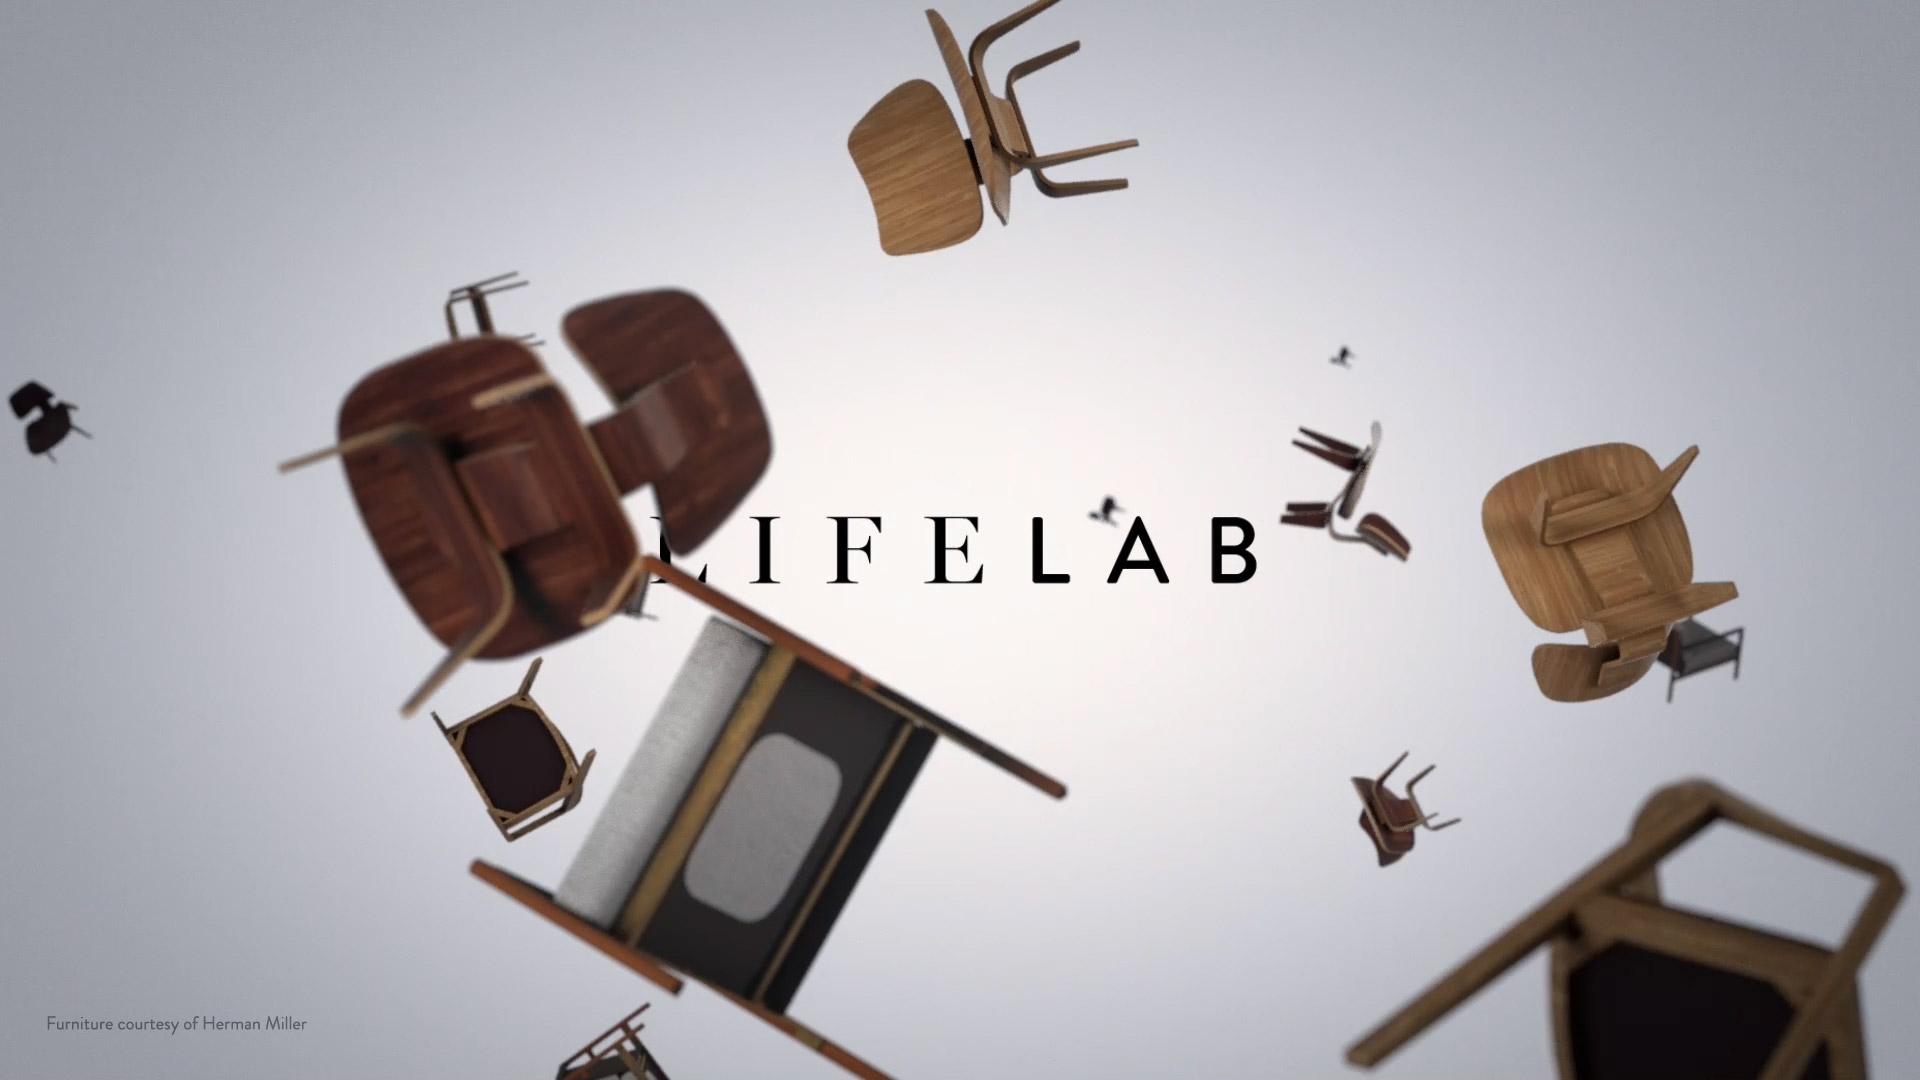 lifelab_homes_anim_v20-1